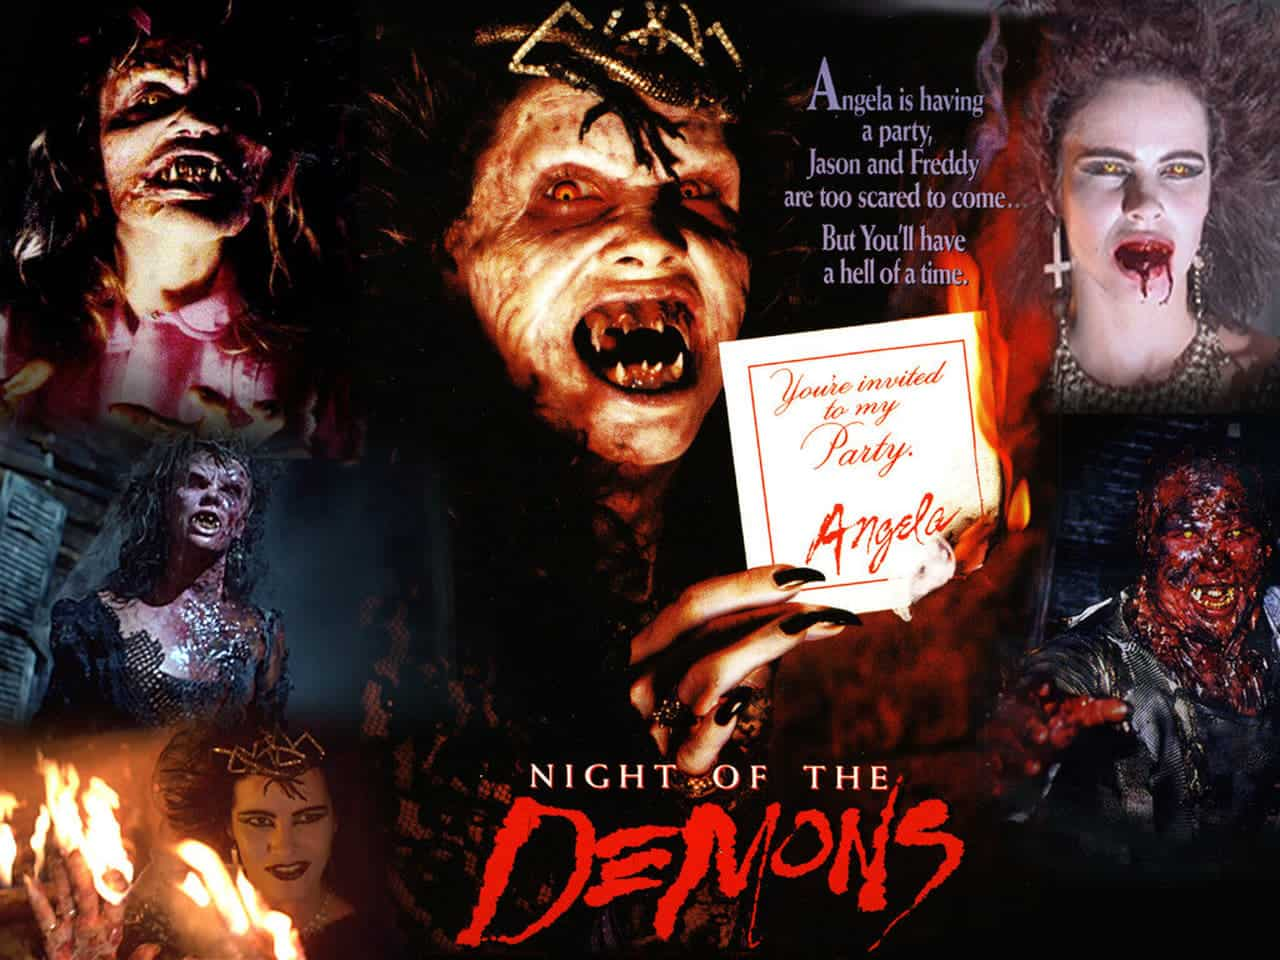 Amelia Kinkade Night Of The Demons night of the demons (1988) full movie - all horror